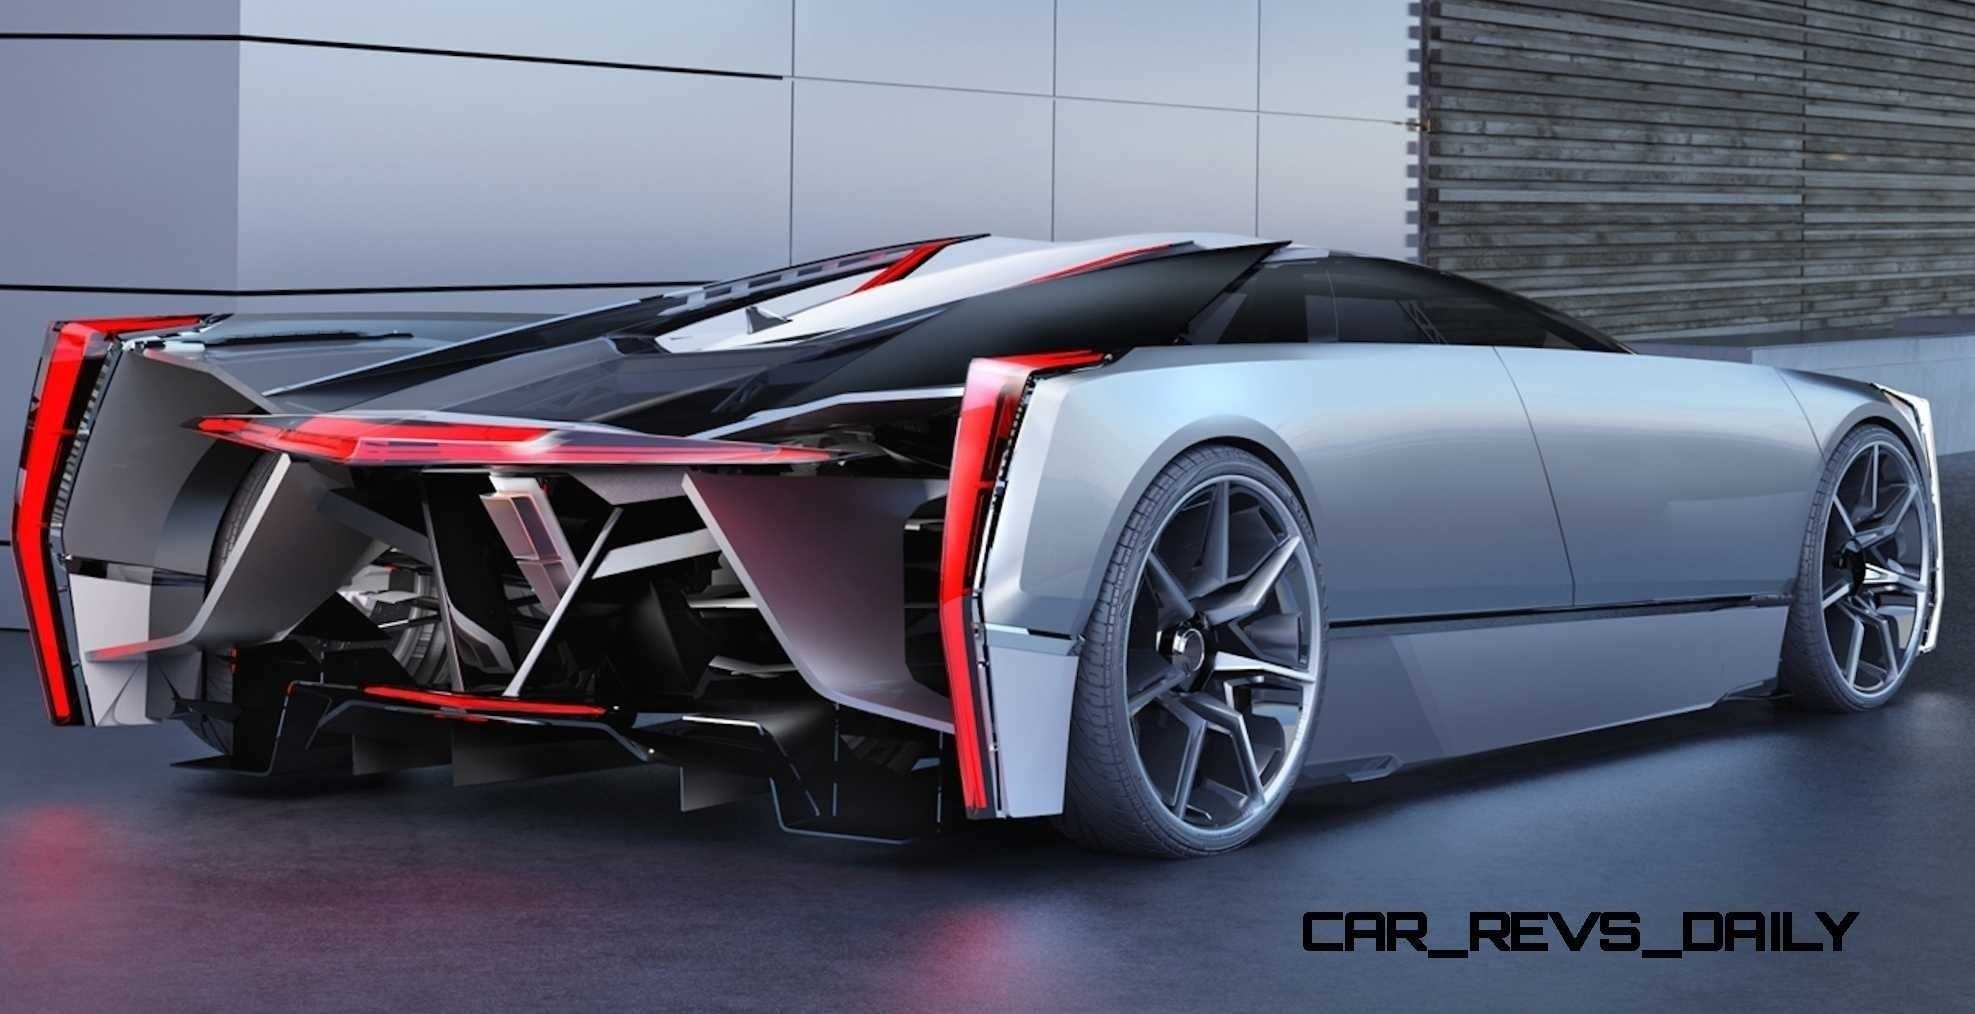 43 A 2020 Cadillac Ciana Price And Release Date